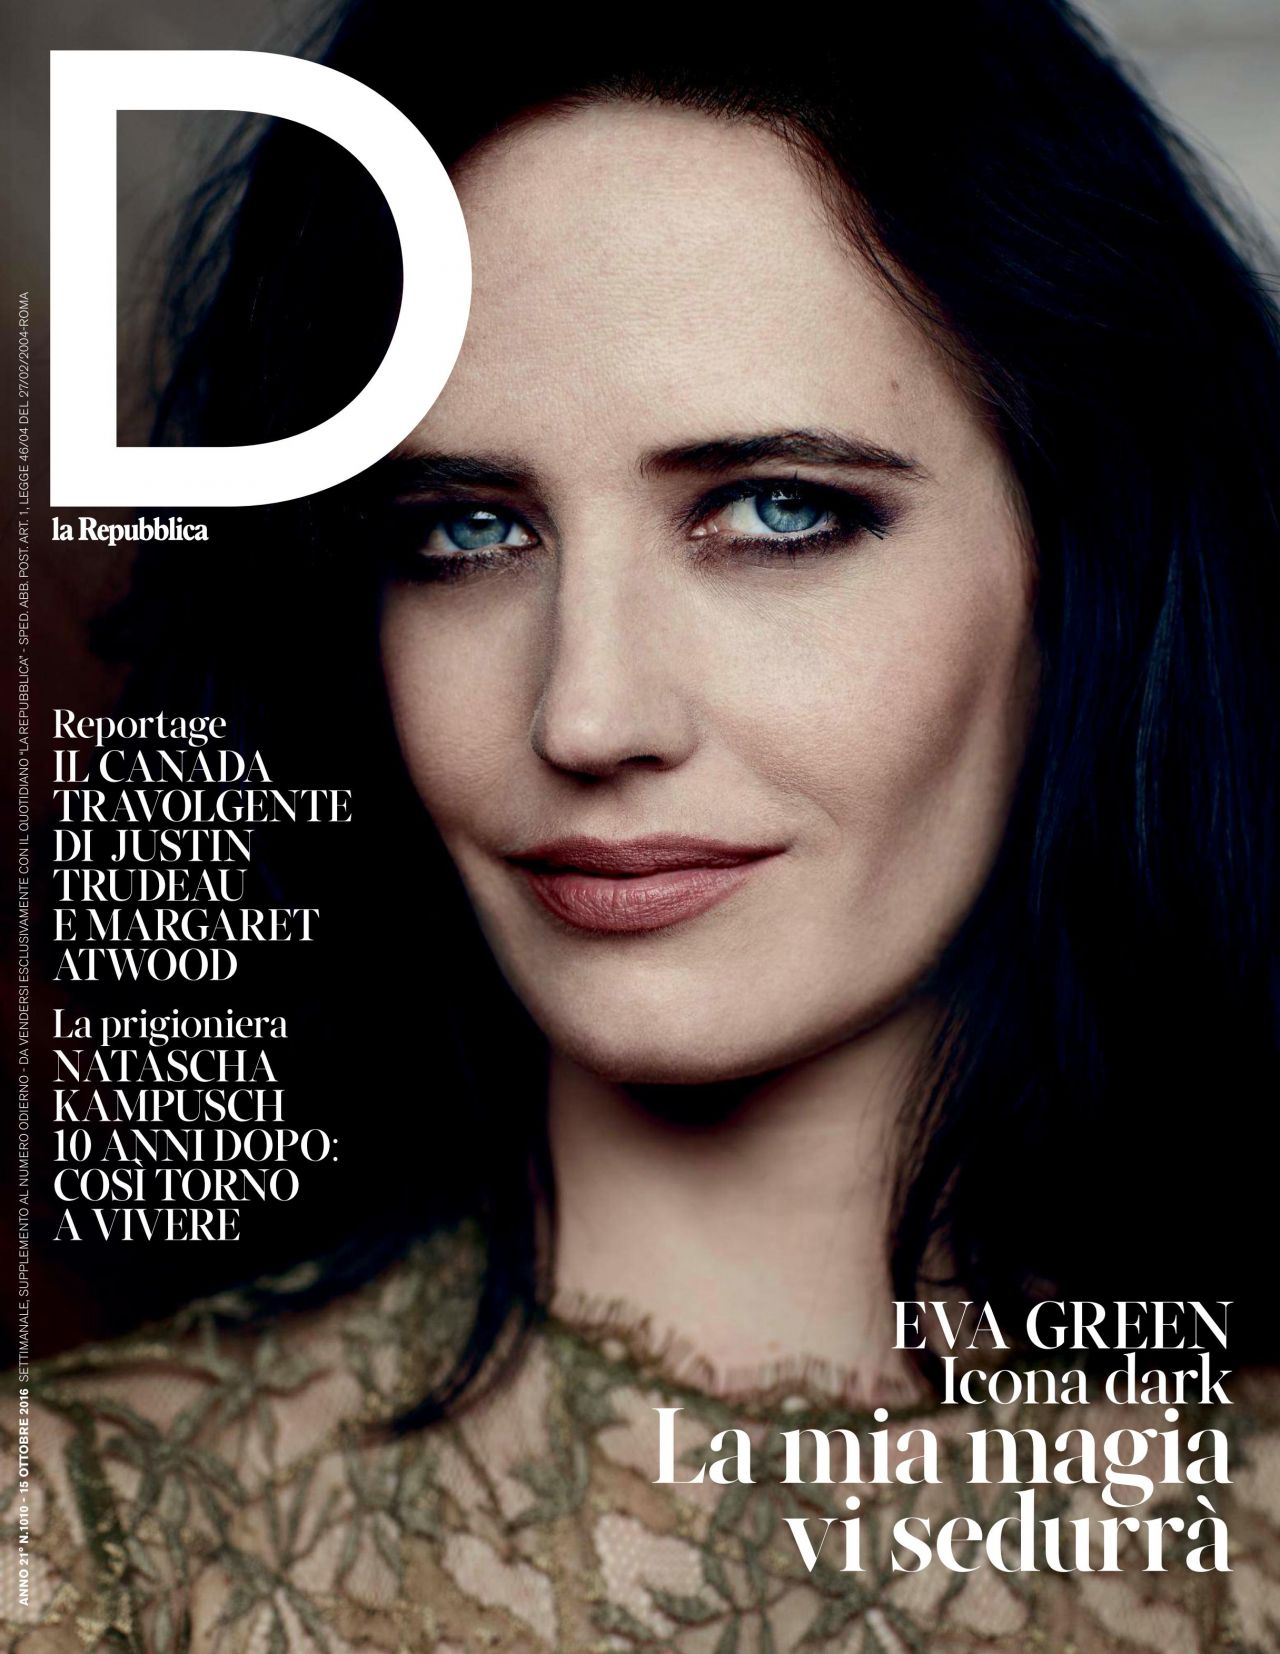 Eva Green photo #747804